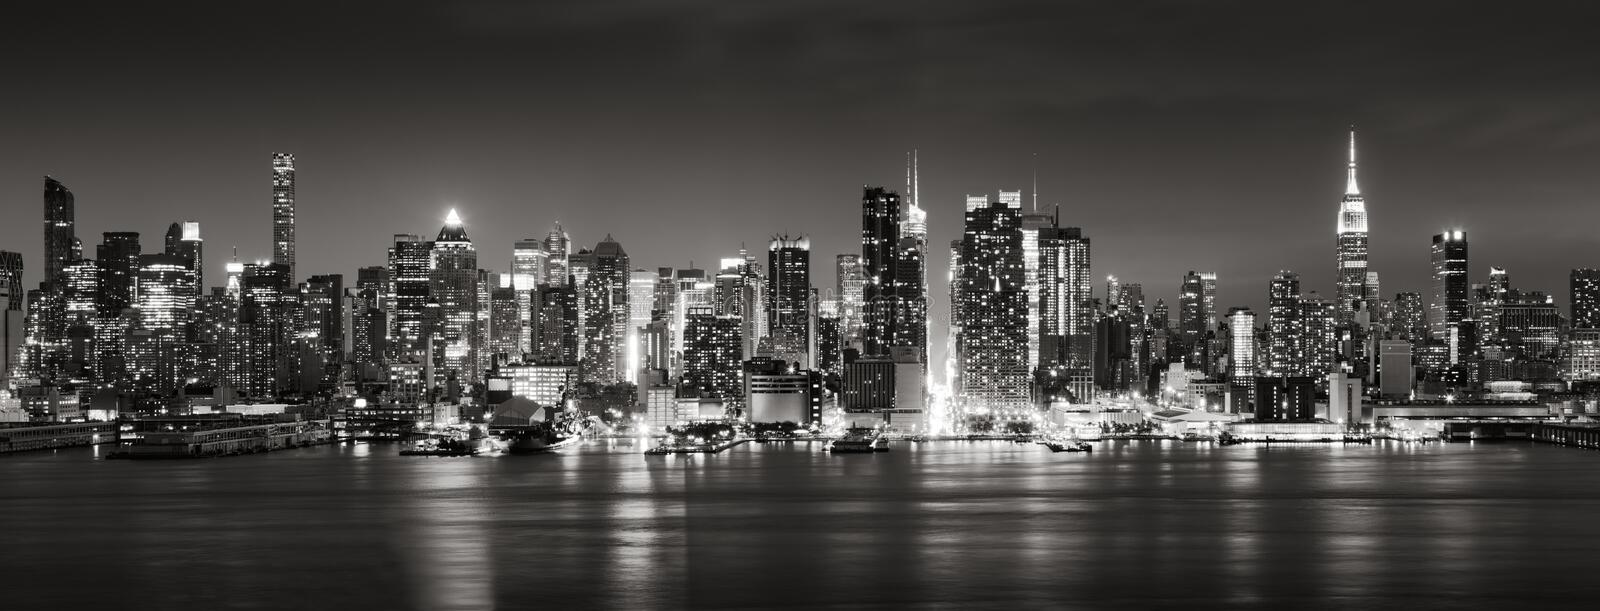 Panoramic Black & White view of Midtown West skyscrapers at night. Manhattan, New York City. Panoramic Black & White view of Midtown West skyscrapers with the royalty free stock photo